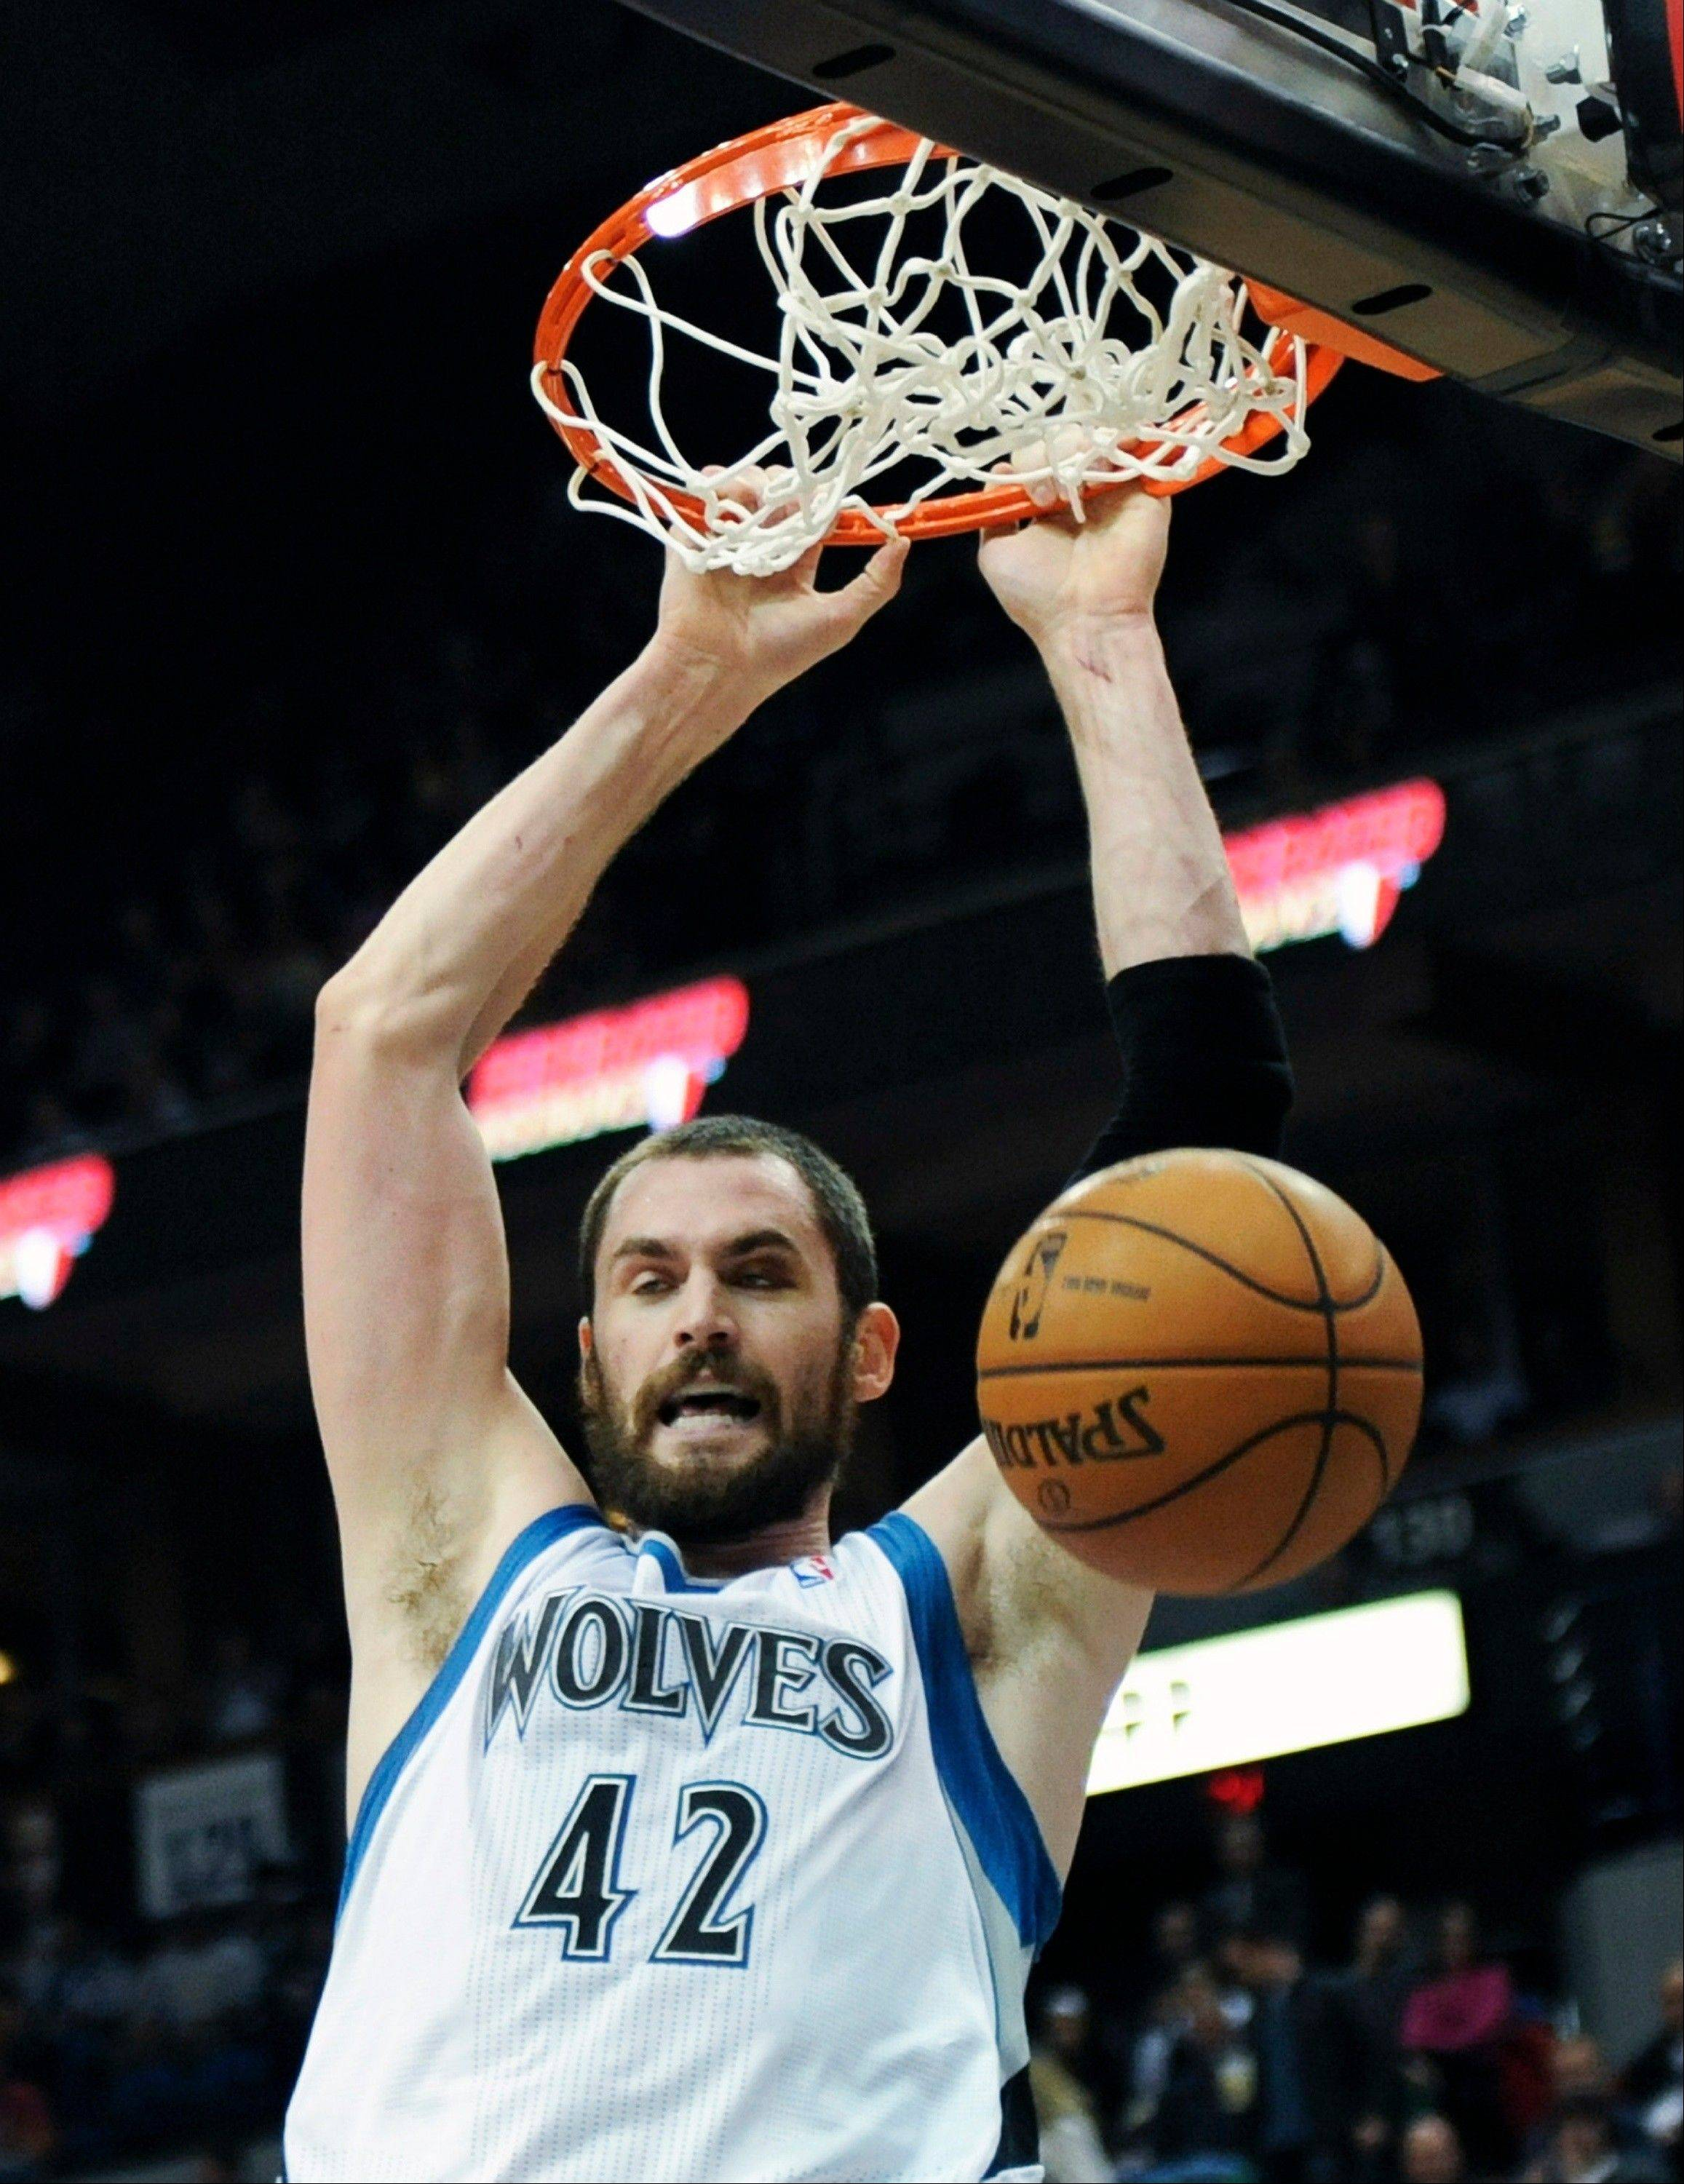 Minnesota Timberwolves forward Kevin Love dunks Friday against the Cleveland Cavaliers in Minneapolis. Love met with the media on Wednesday morning before the Wolves were scheduled to host the Denver Nuggets to address comments he made to Yahoo! Sports that were critical of Timberwolves leadership.